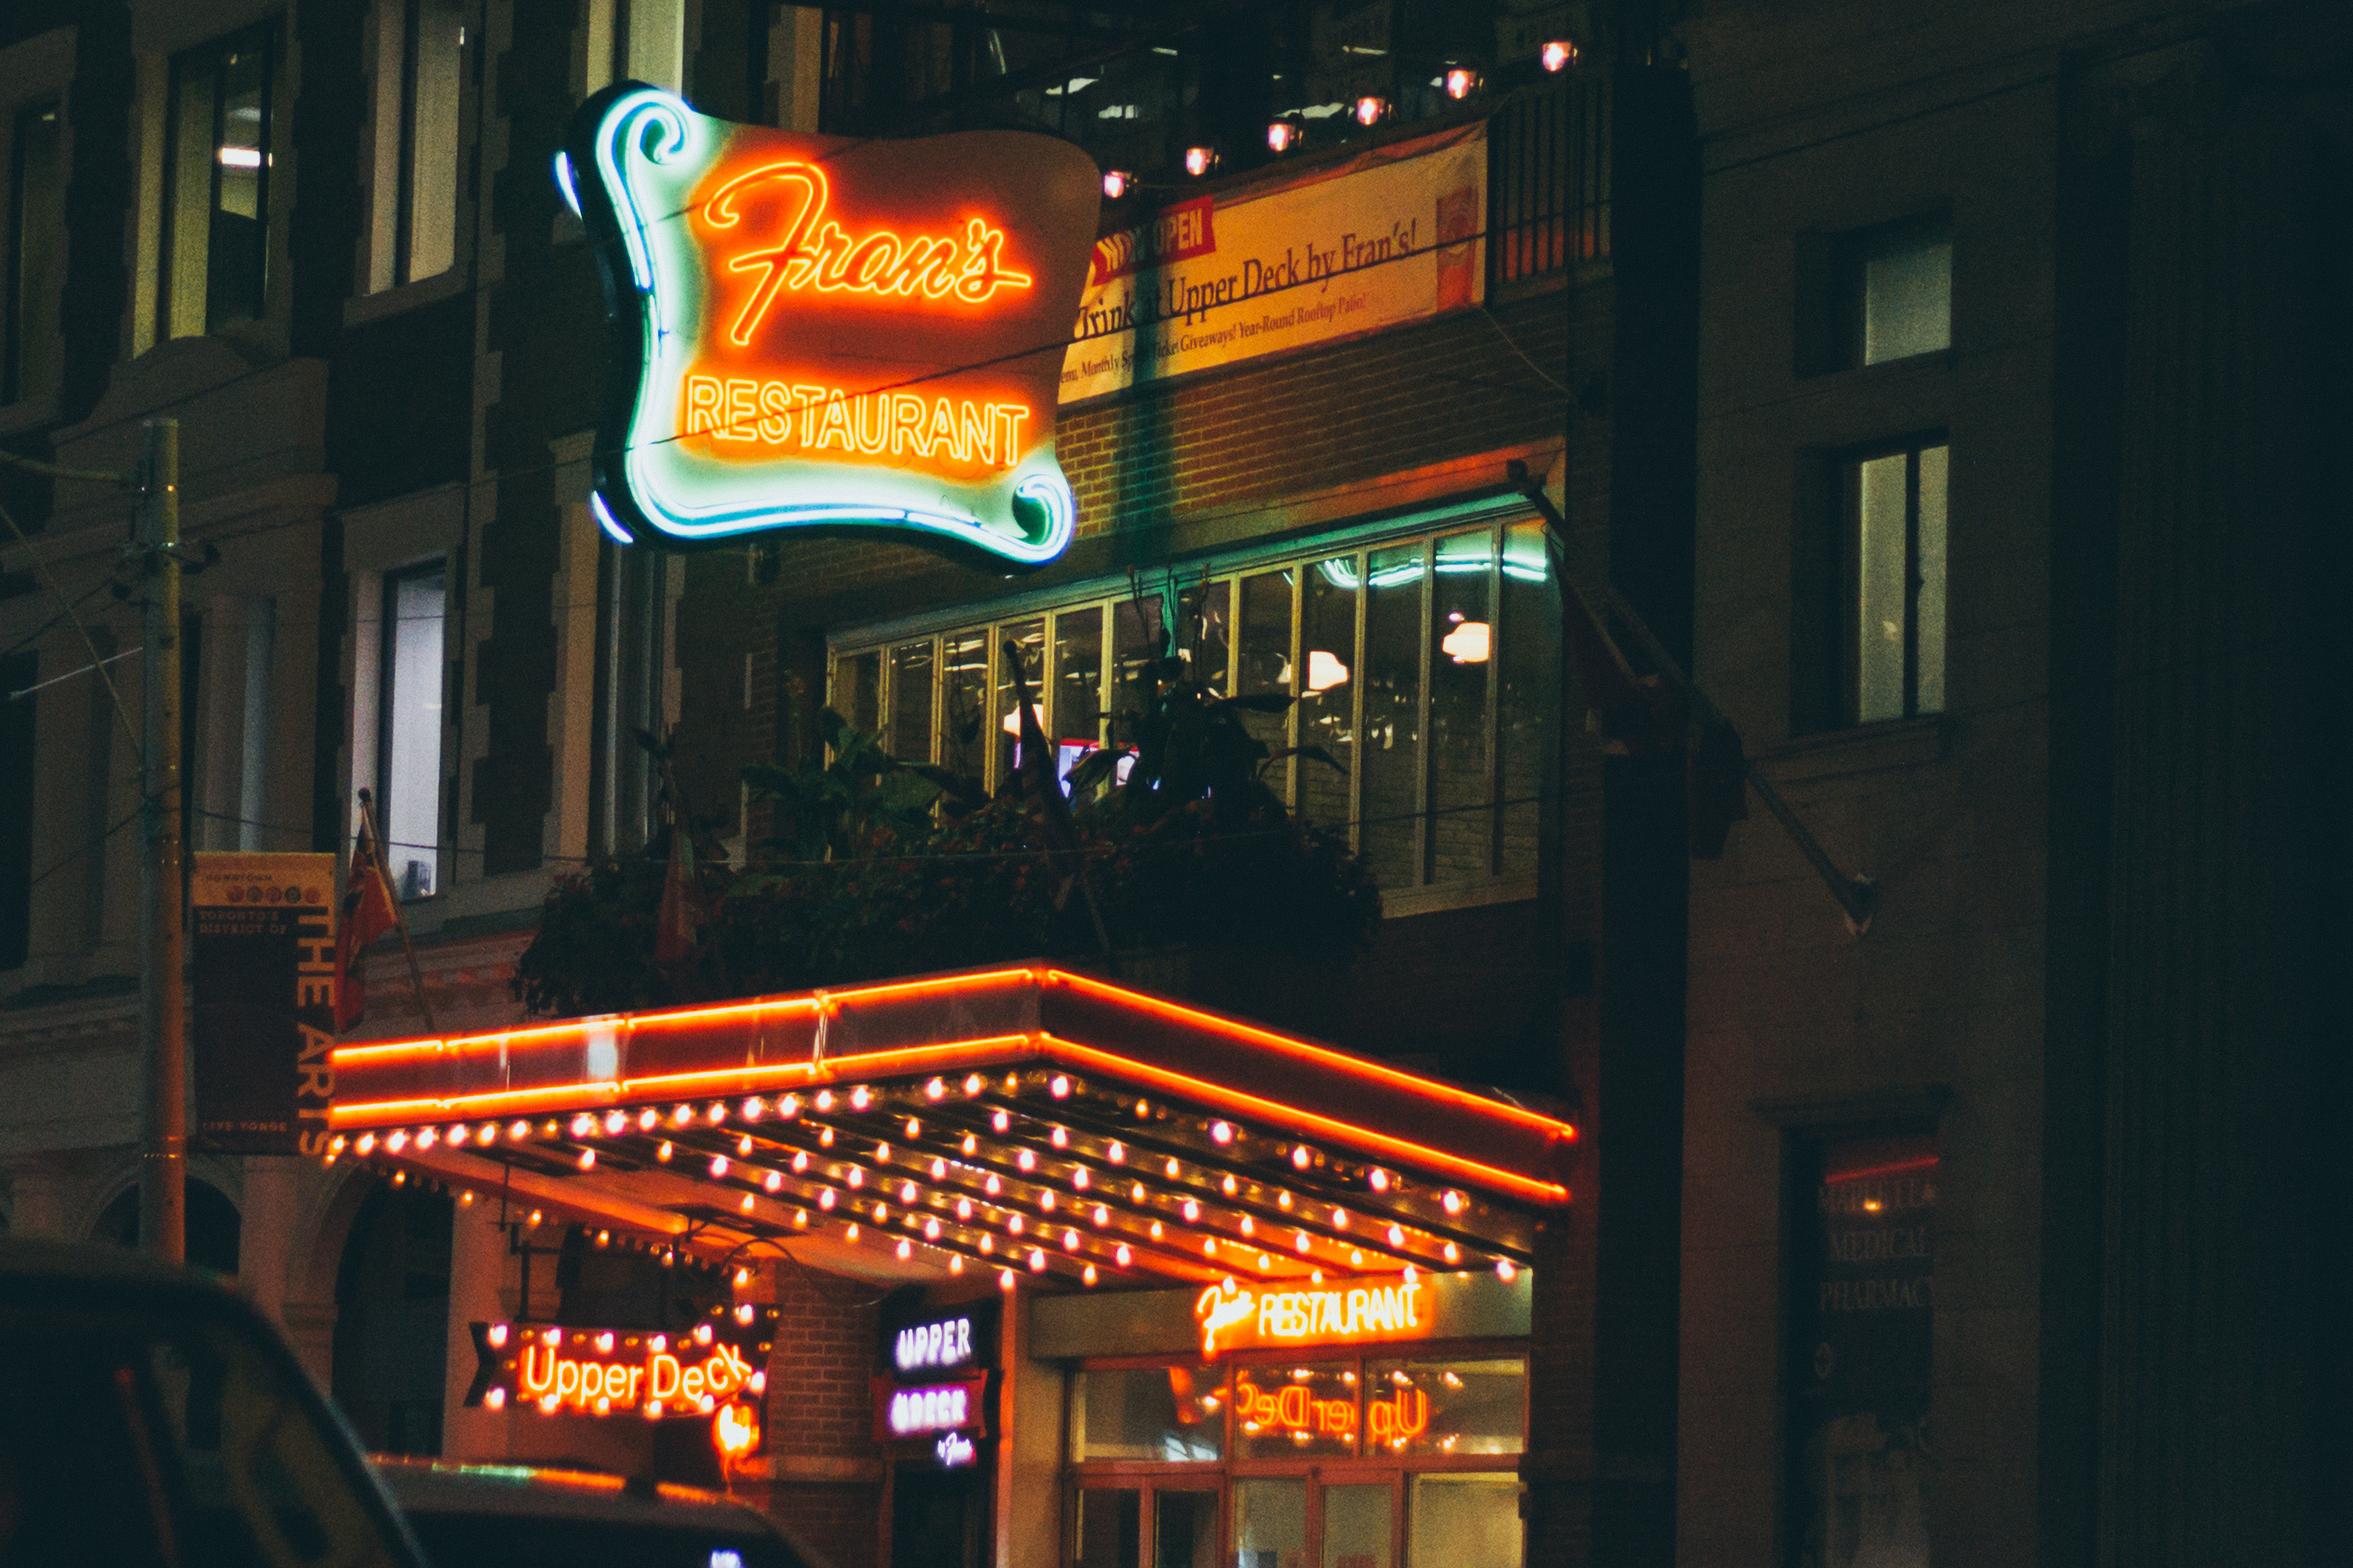 The Fran's Restaurant sign lit up at night